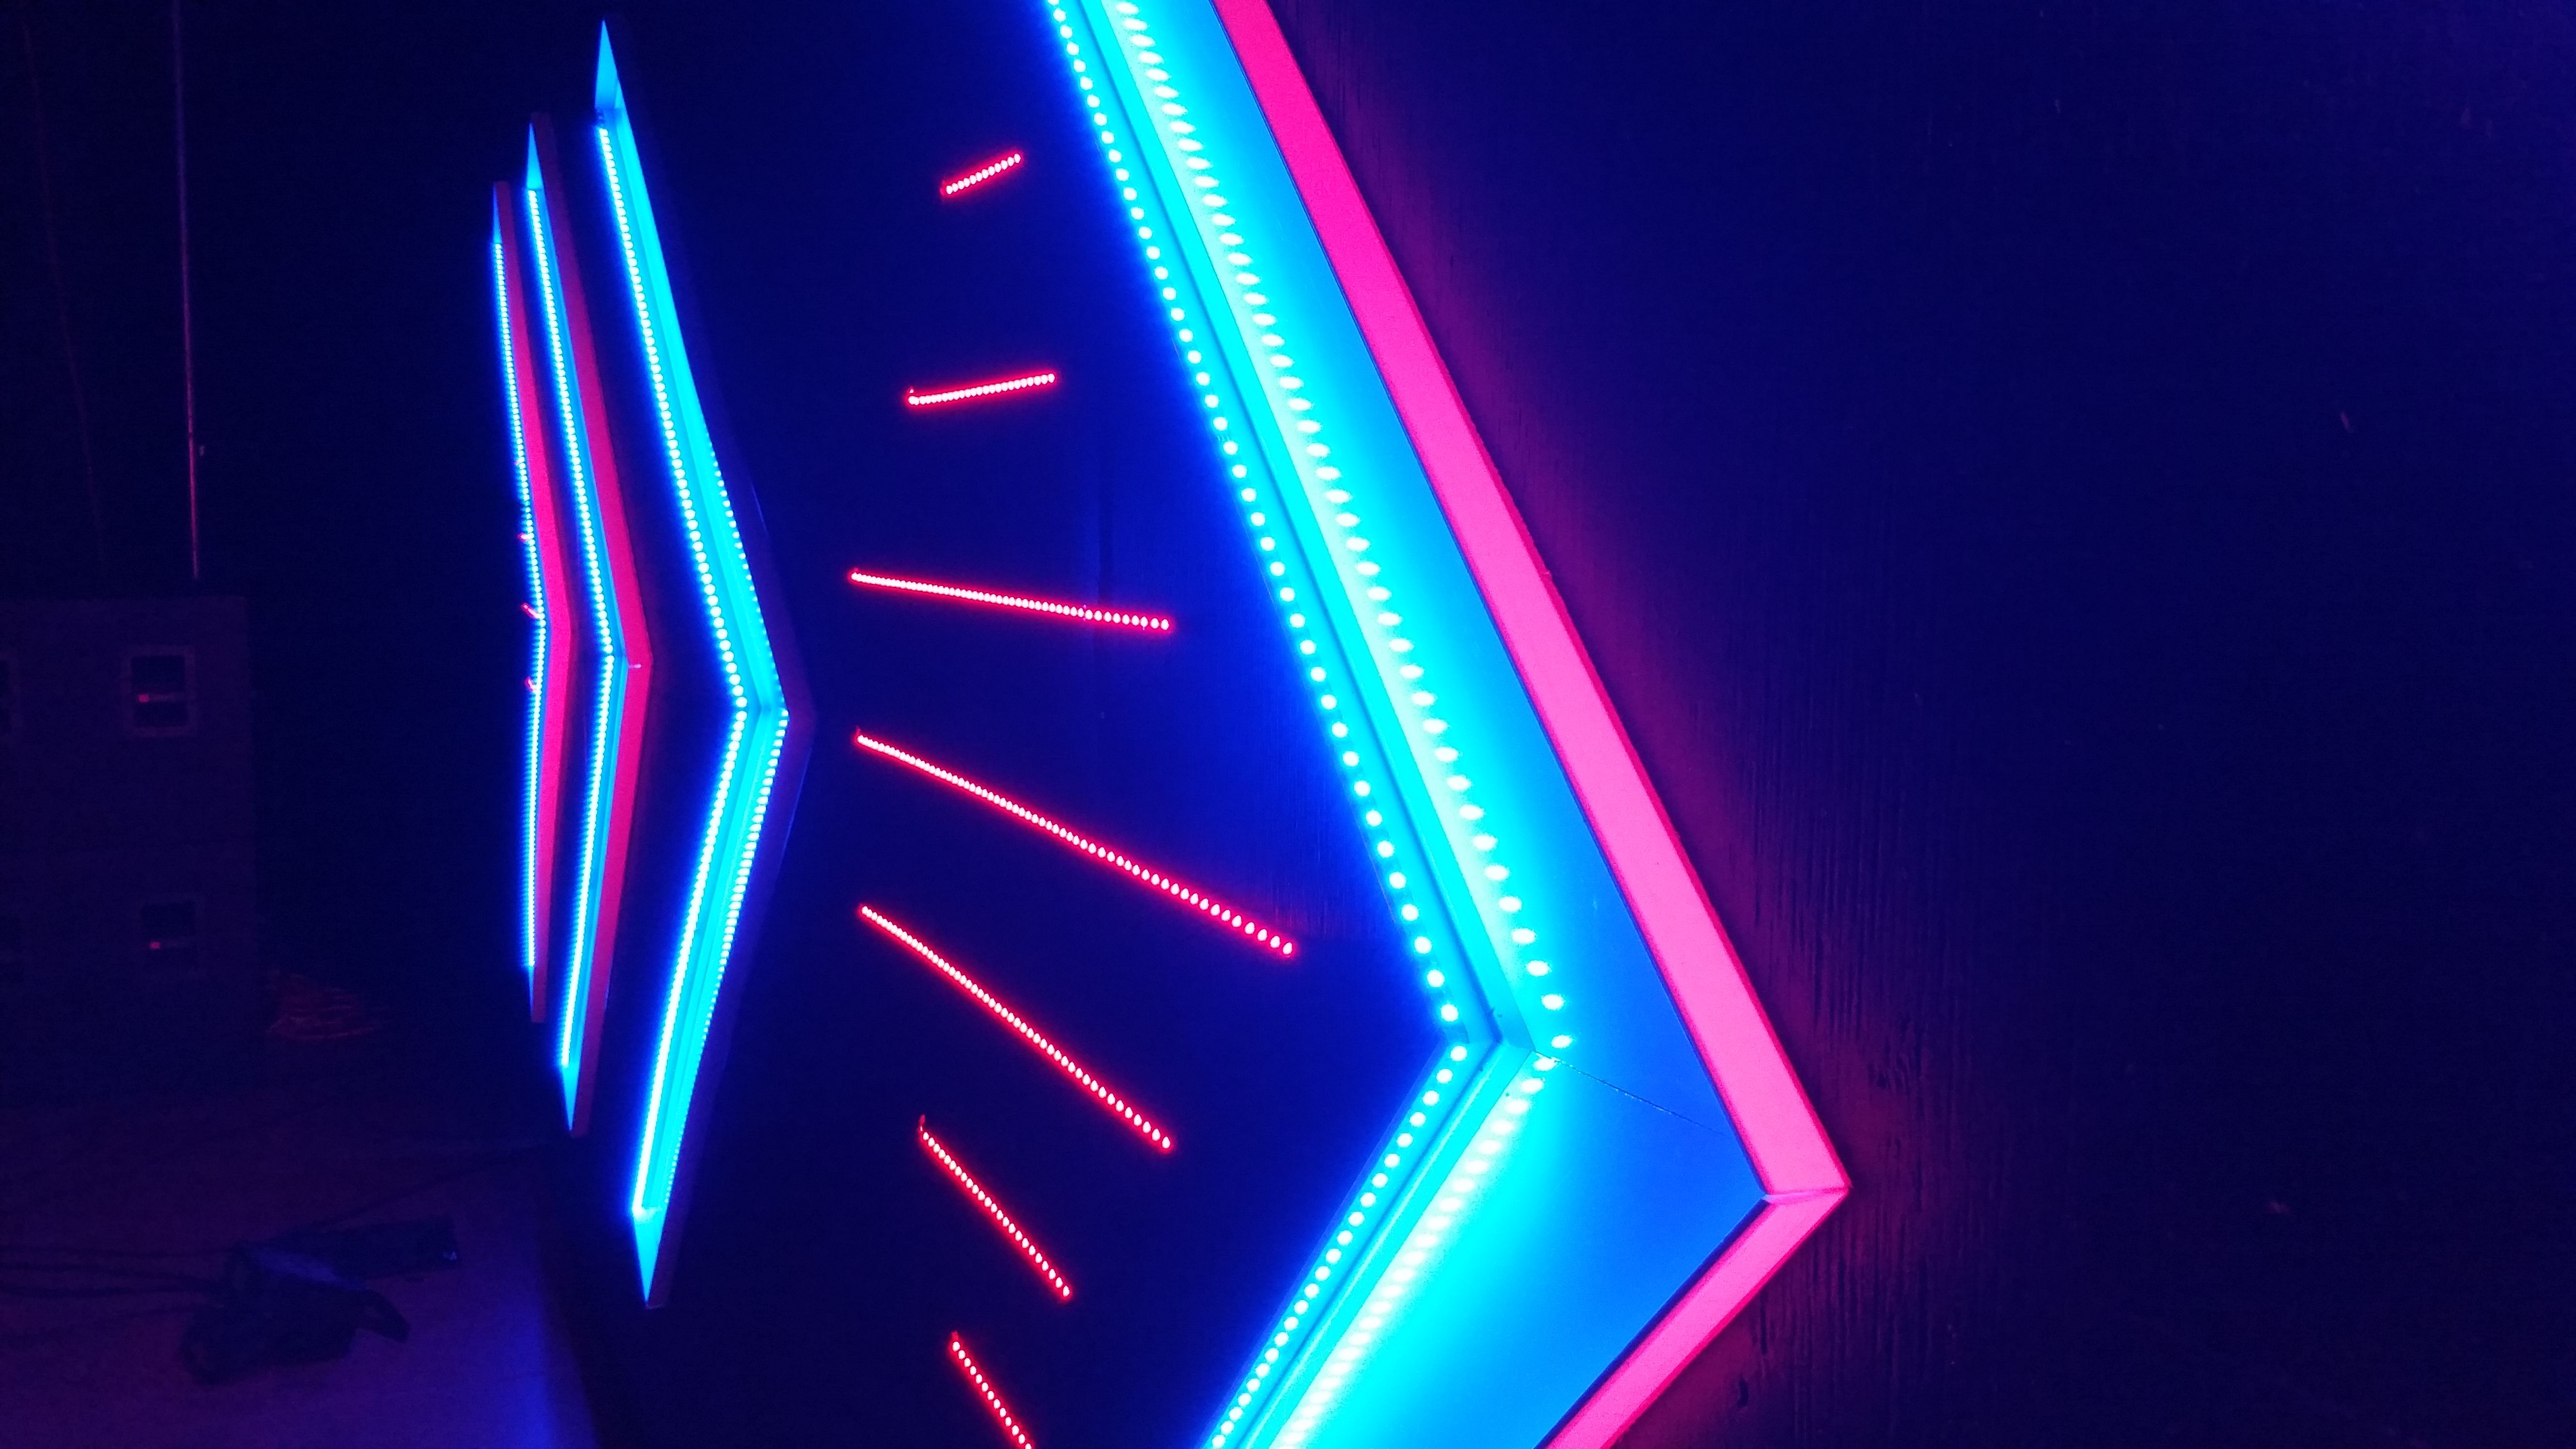 Led tape mirrors infinity lights church stage ideas led tape mirrors infinity lights church stage ideas pinterest infinity lights stage design and church stage arubaitofo Gallery